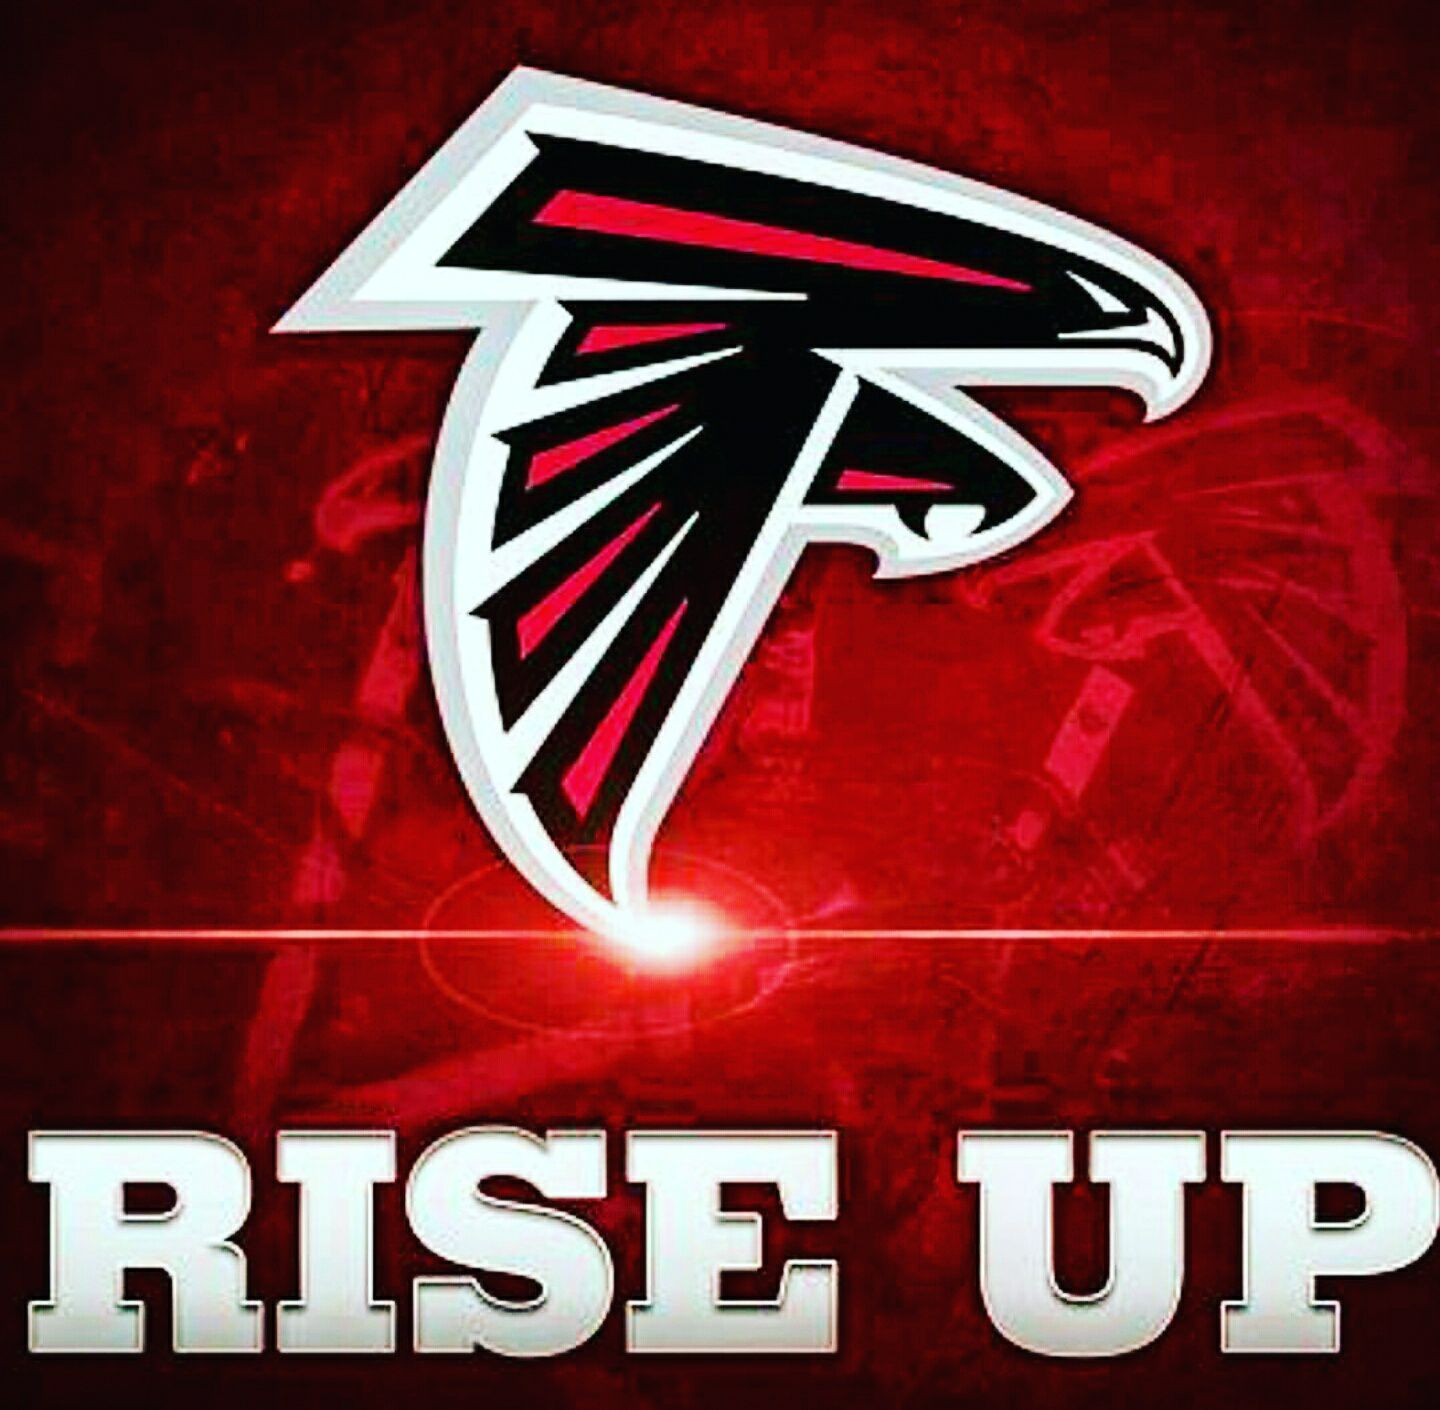 Rise Up Logo Rise Up Atlanta Falcons Superbowl Li Nfc Champions Riseup Atlantafalcons Falcons Superb Atlanta Falcons Logo Atlanta Falcons Falcons Fan